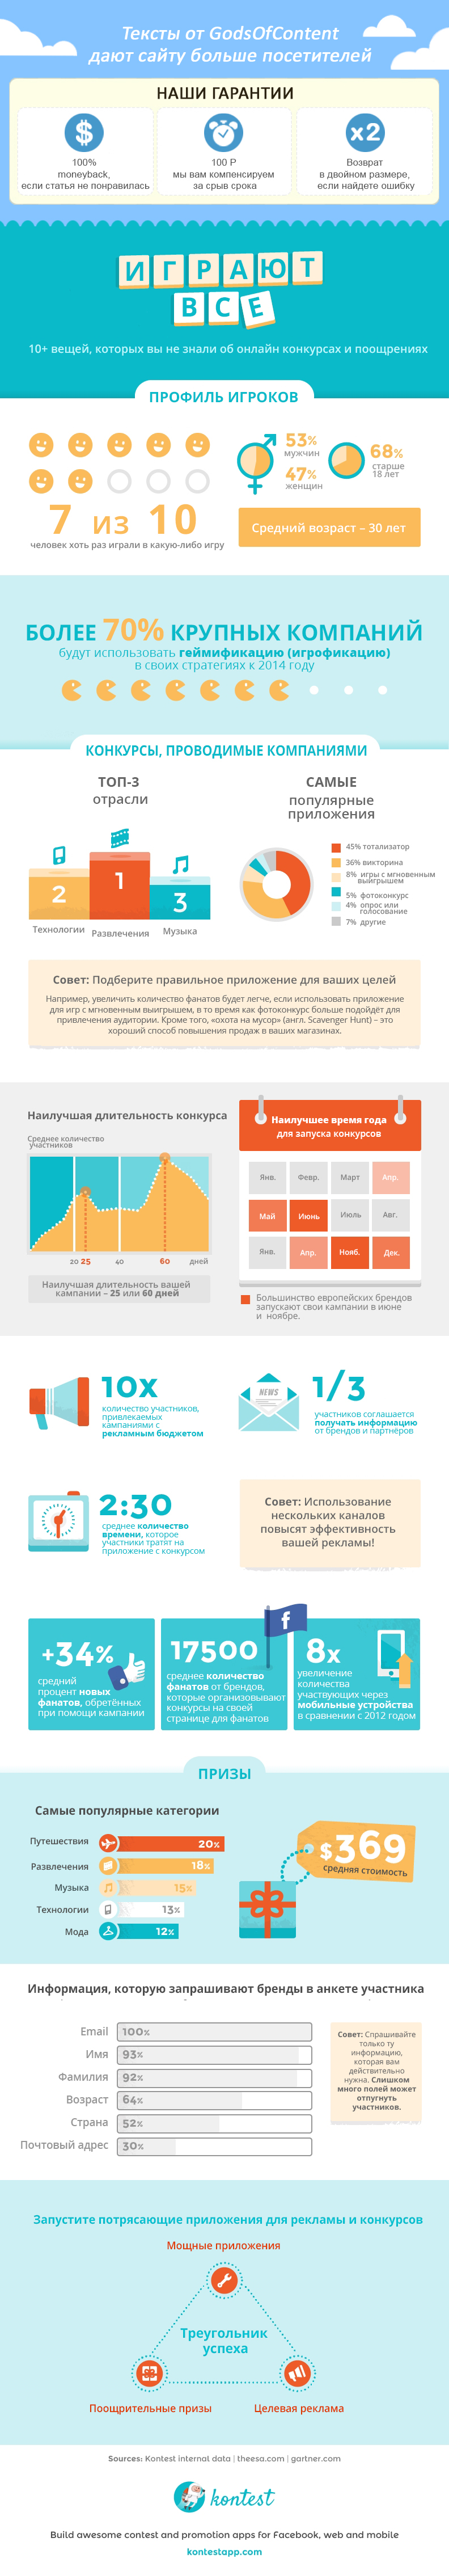 8-инфографика_KontestappInfographic